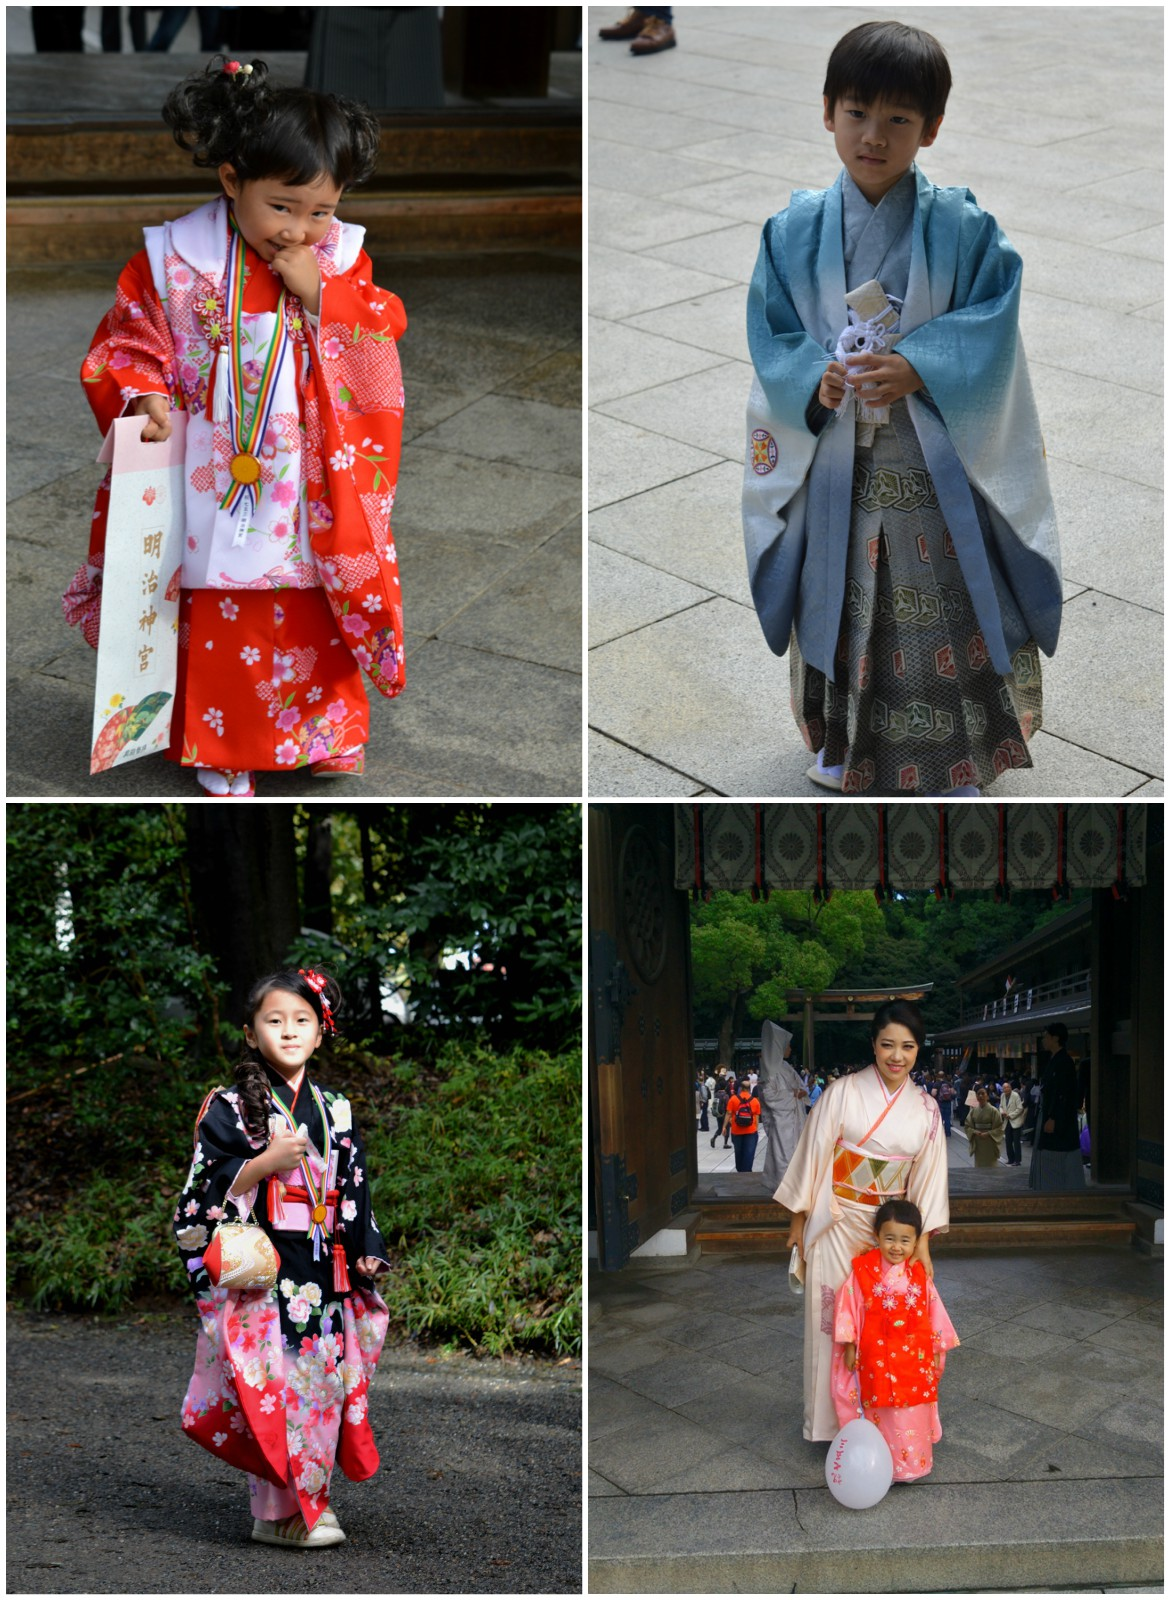 Japanese wedding - children in traditional costumes